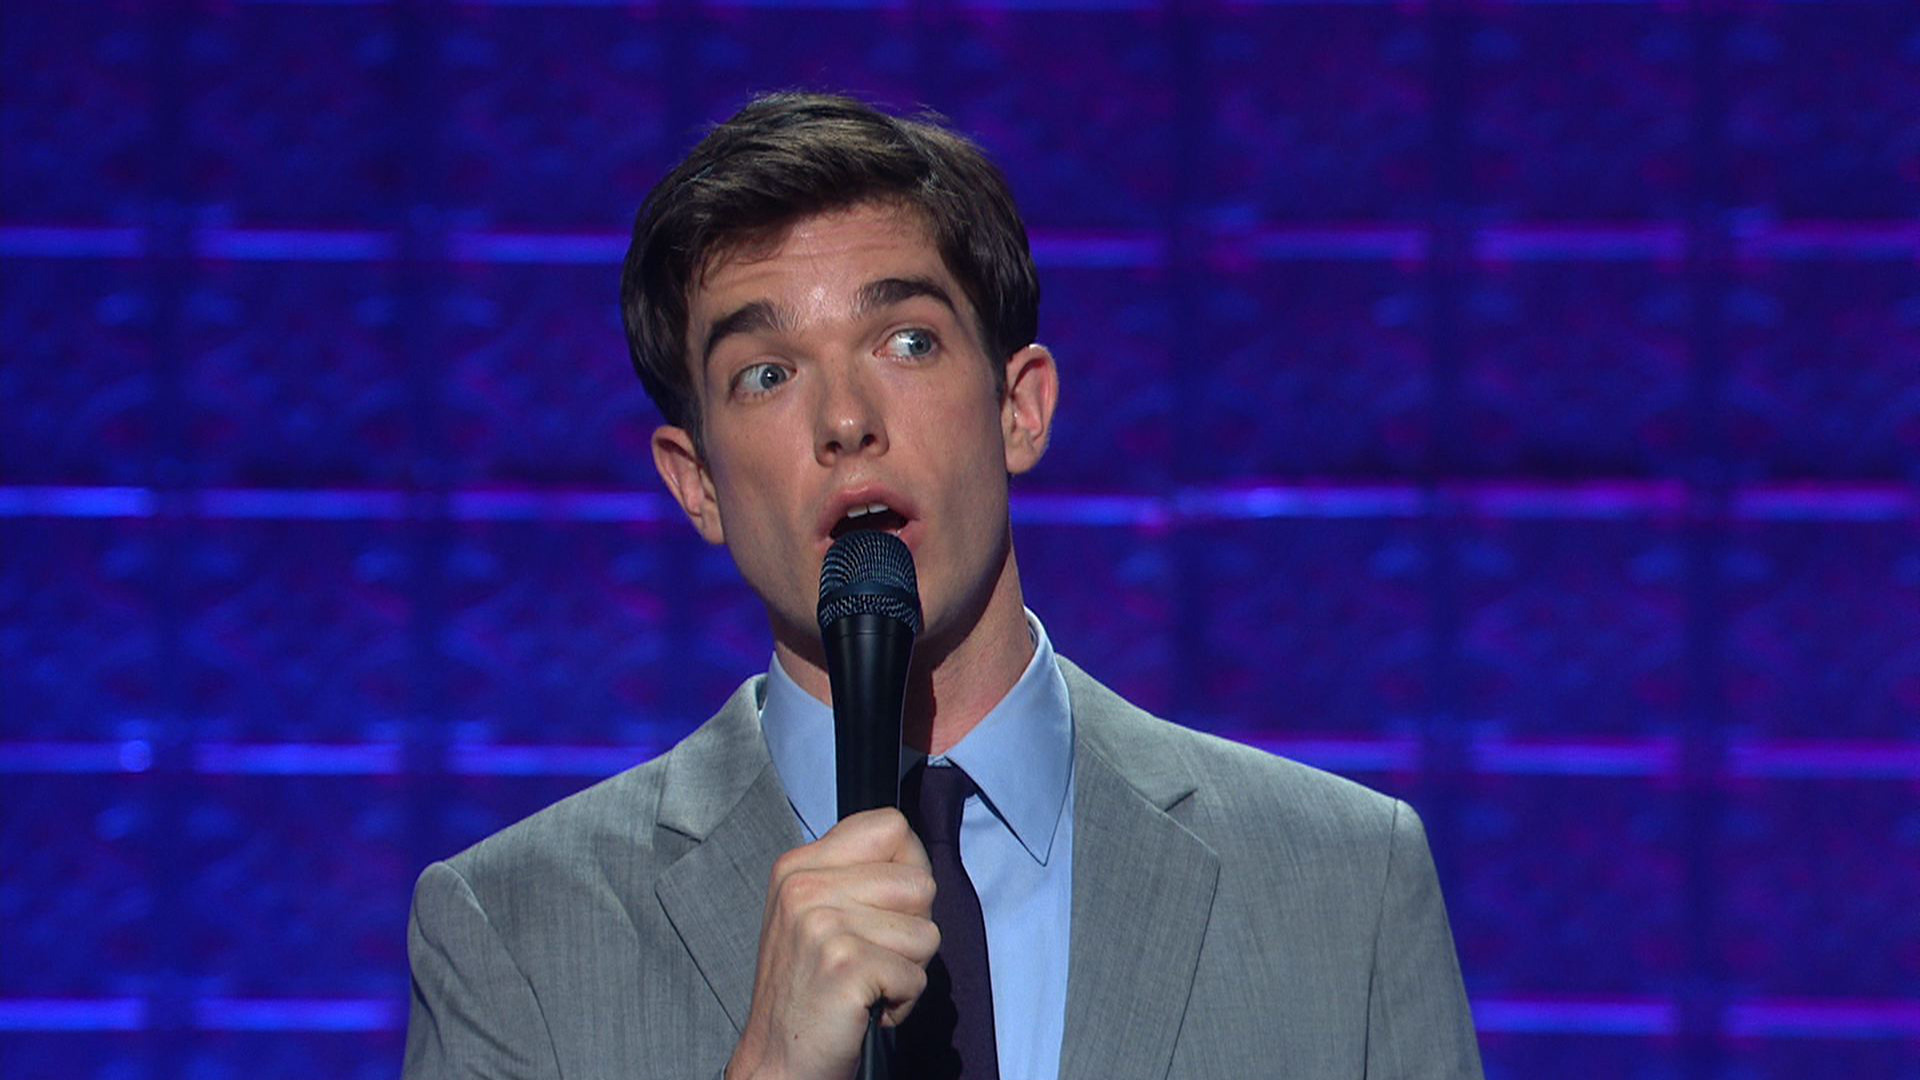 John Mulaney - Ice T on